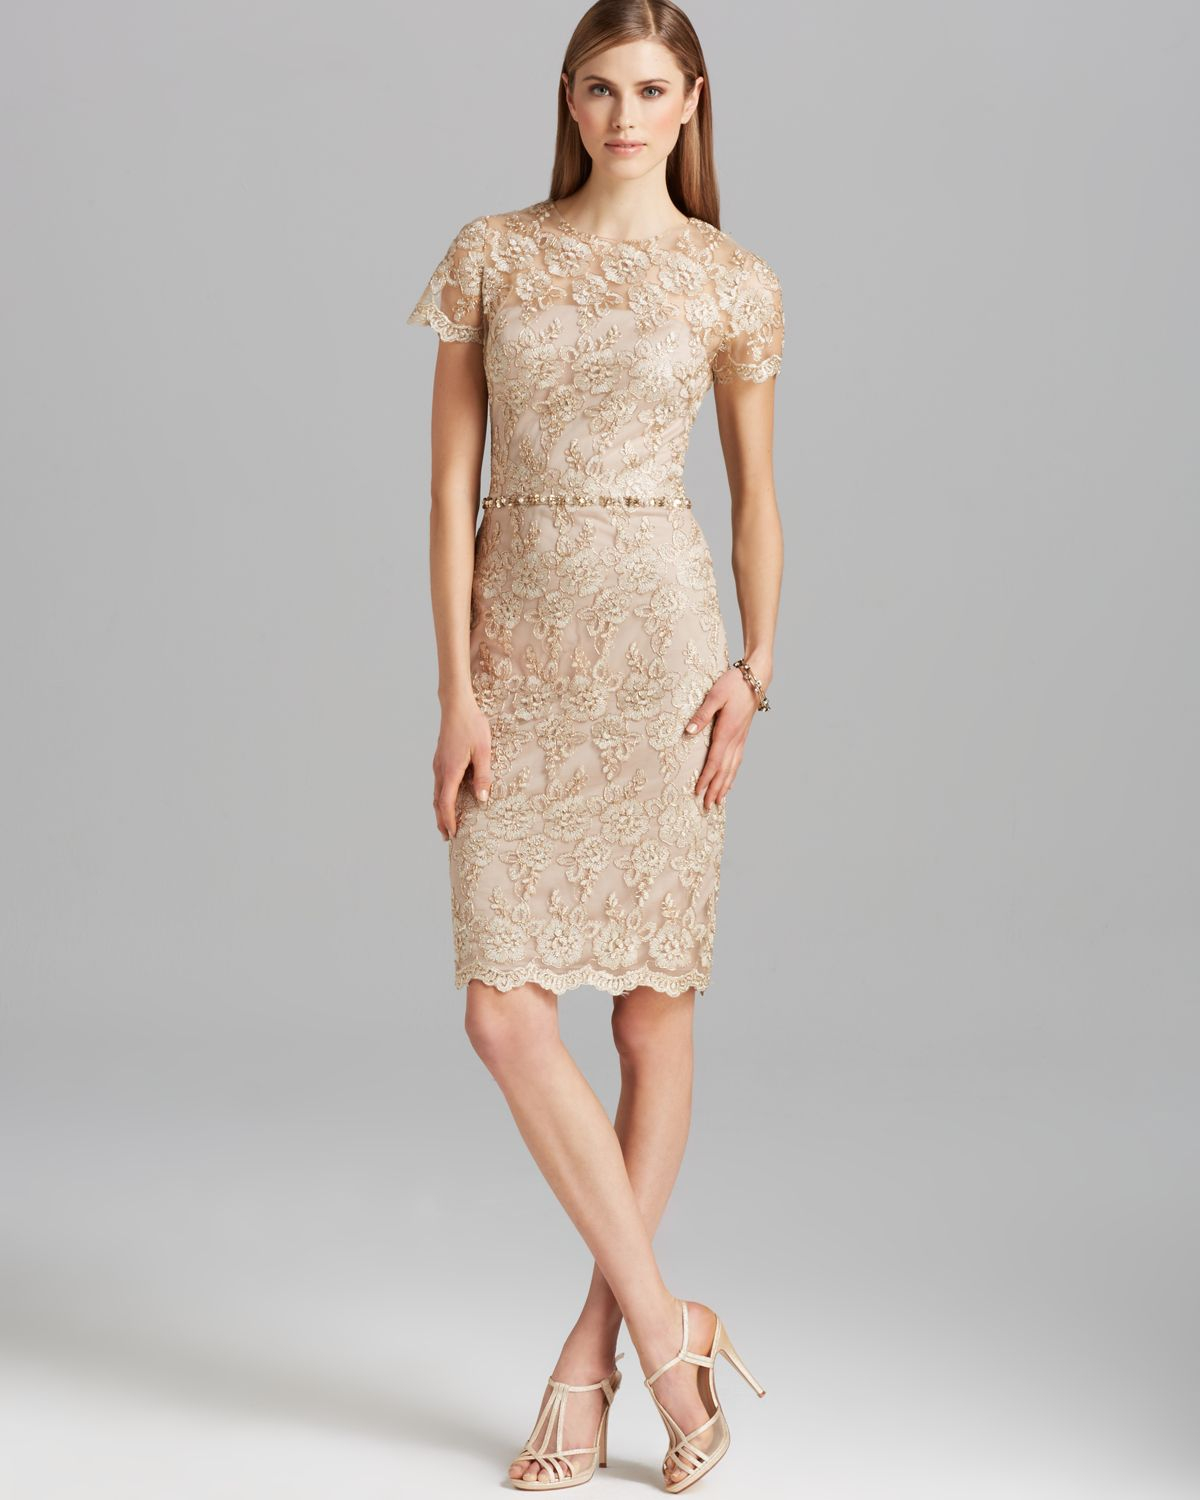 Short White Beaded Lace Dress